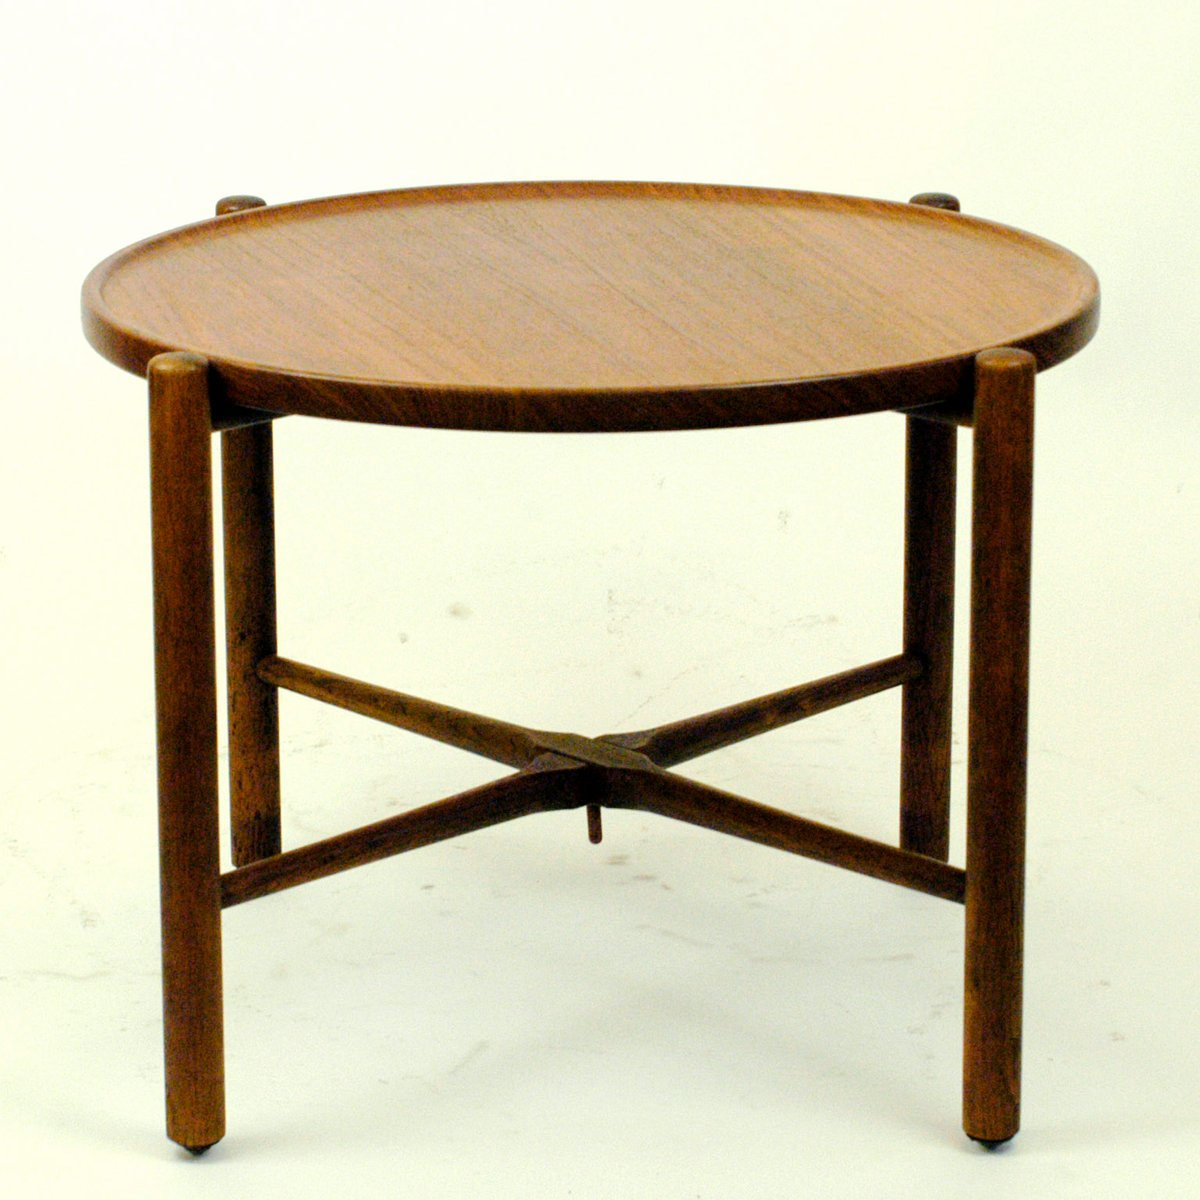 Antique Teak Coffee Table: Vintage Danish Teak Coffee Table By Hans Wegner For